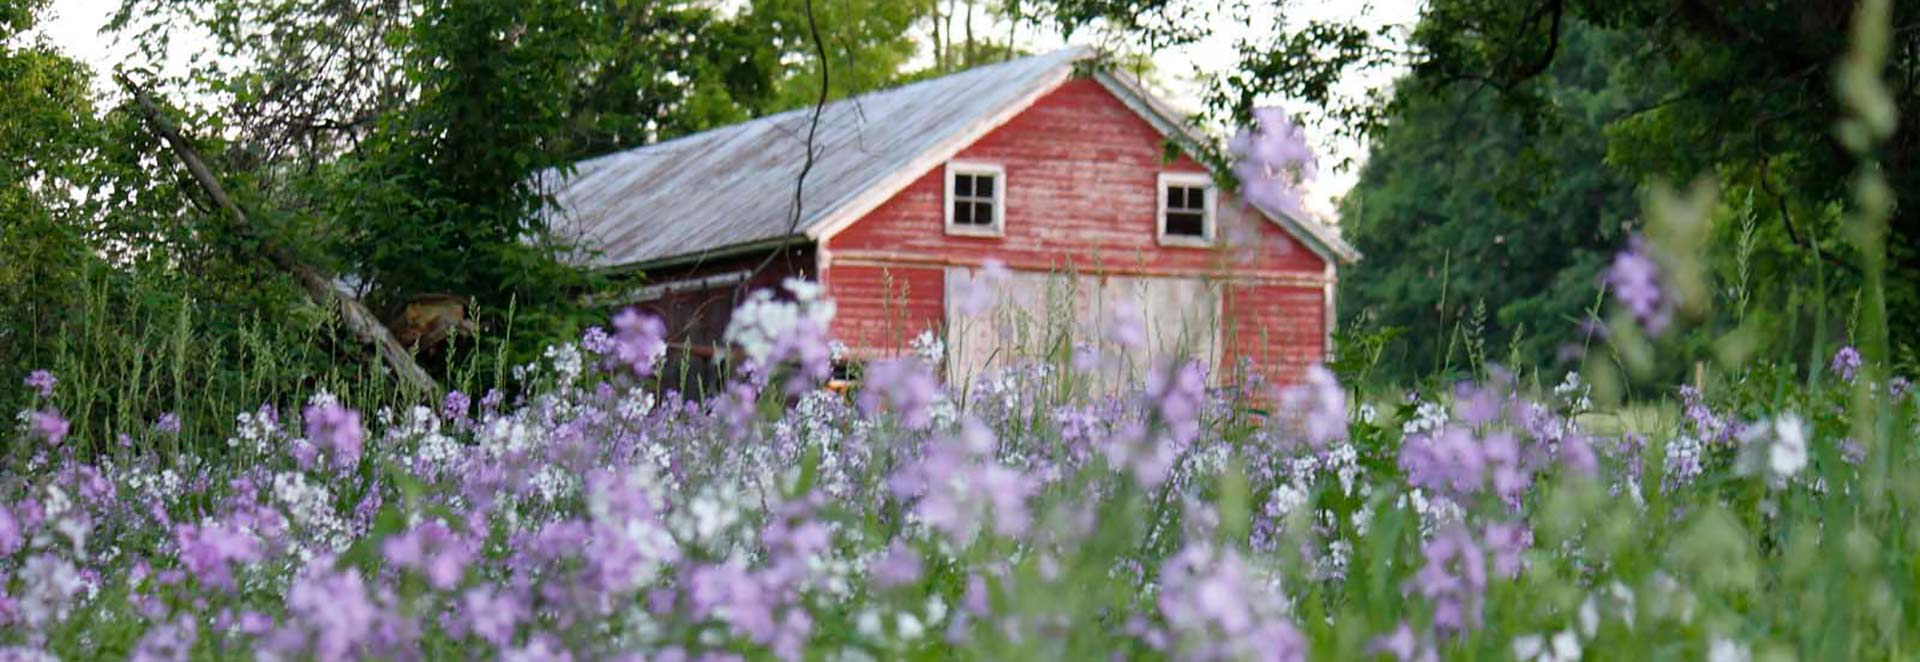 vermont farm red barn purple flowers field